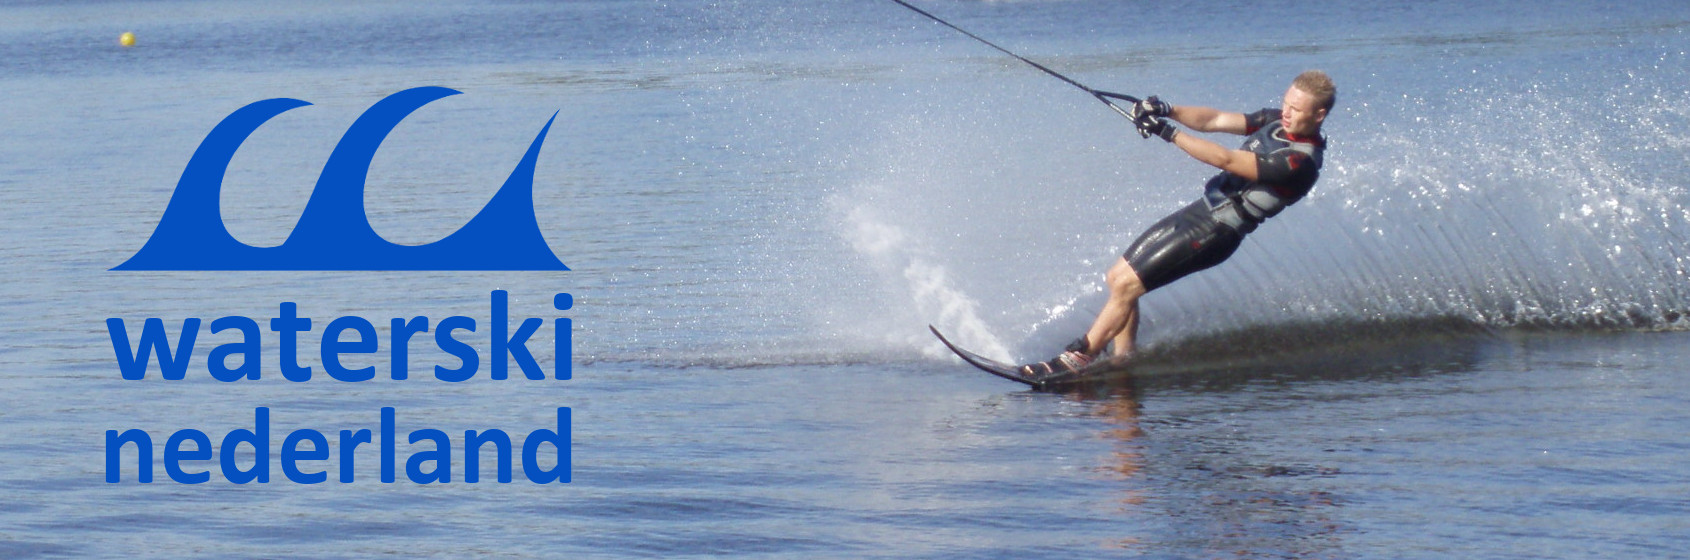 Cable waterski met Michael Erends - Waterski Nederland